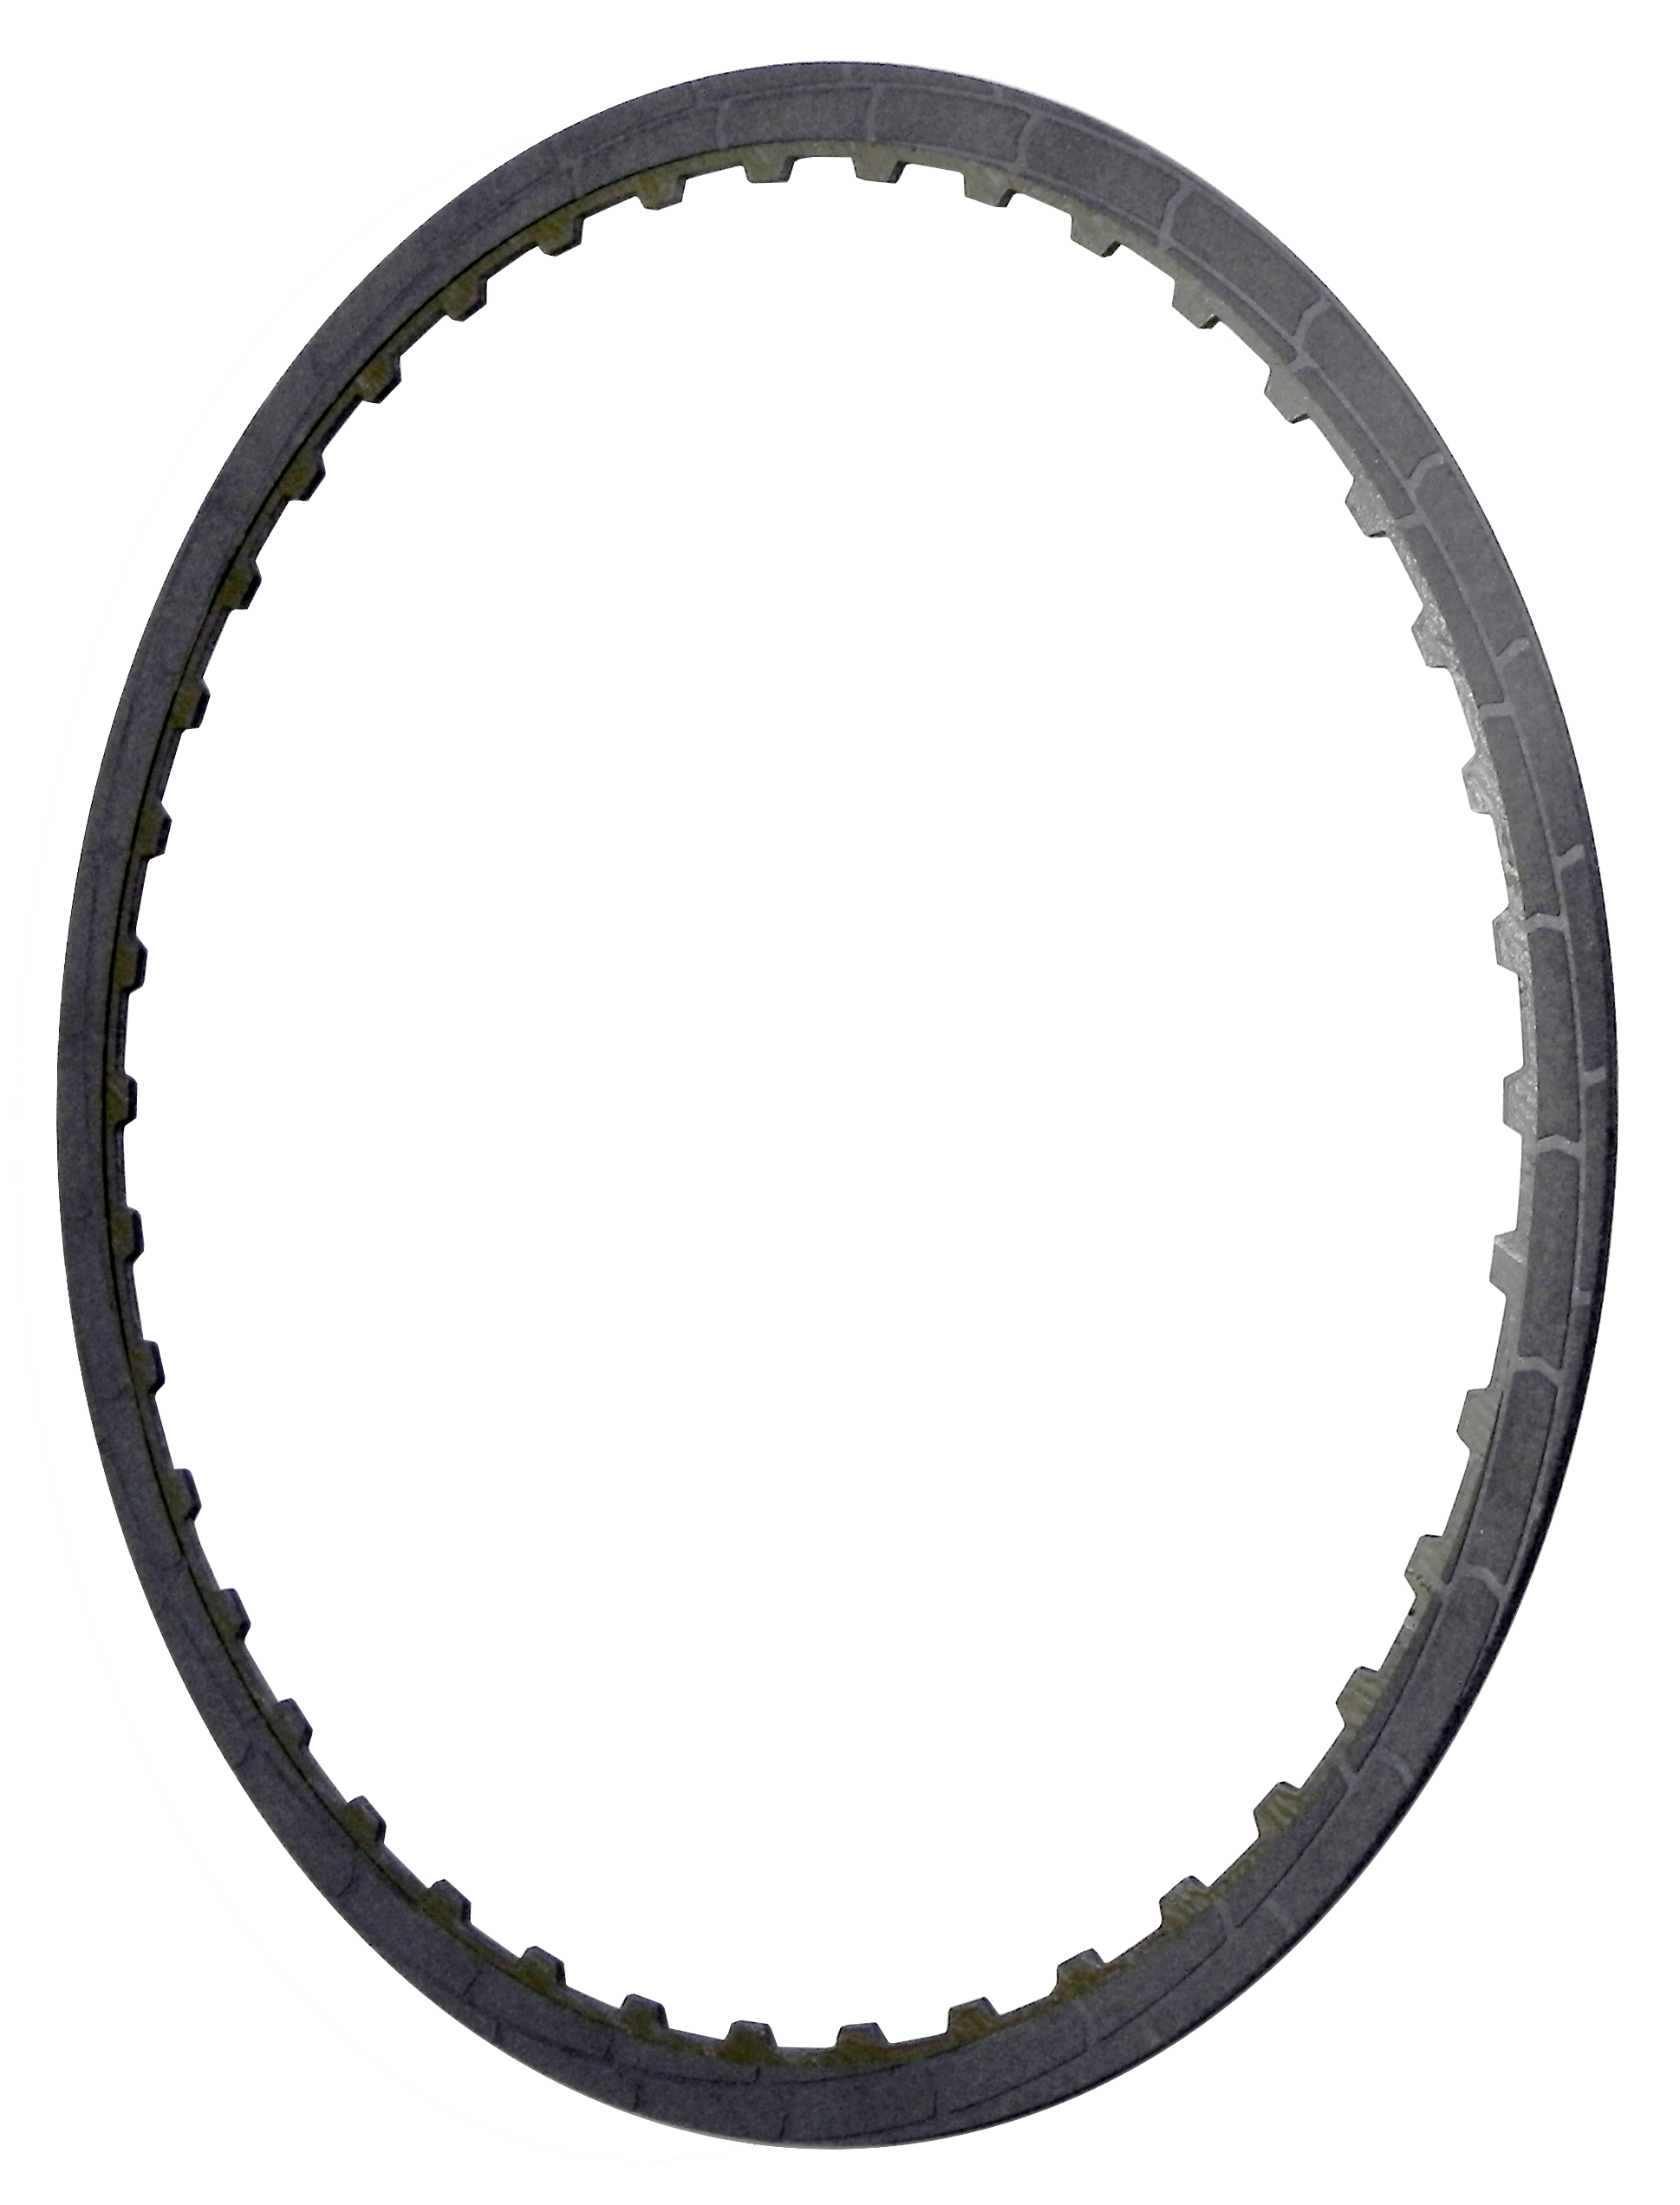 RH572720 | 2004-ON Friction Clutch Plate (HT) Hybrid Technology B1 09G Proprietary High Energy (HT)